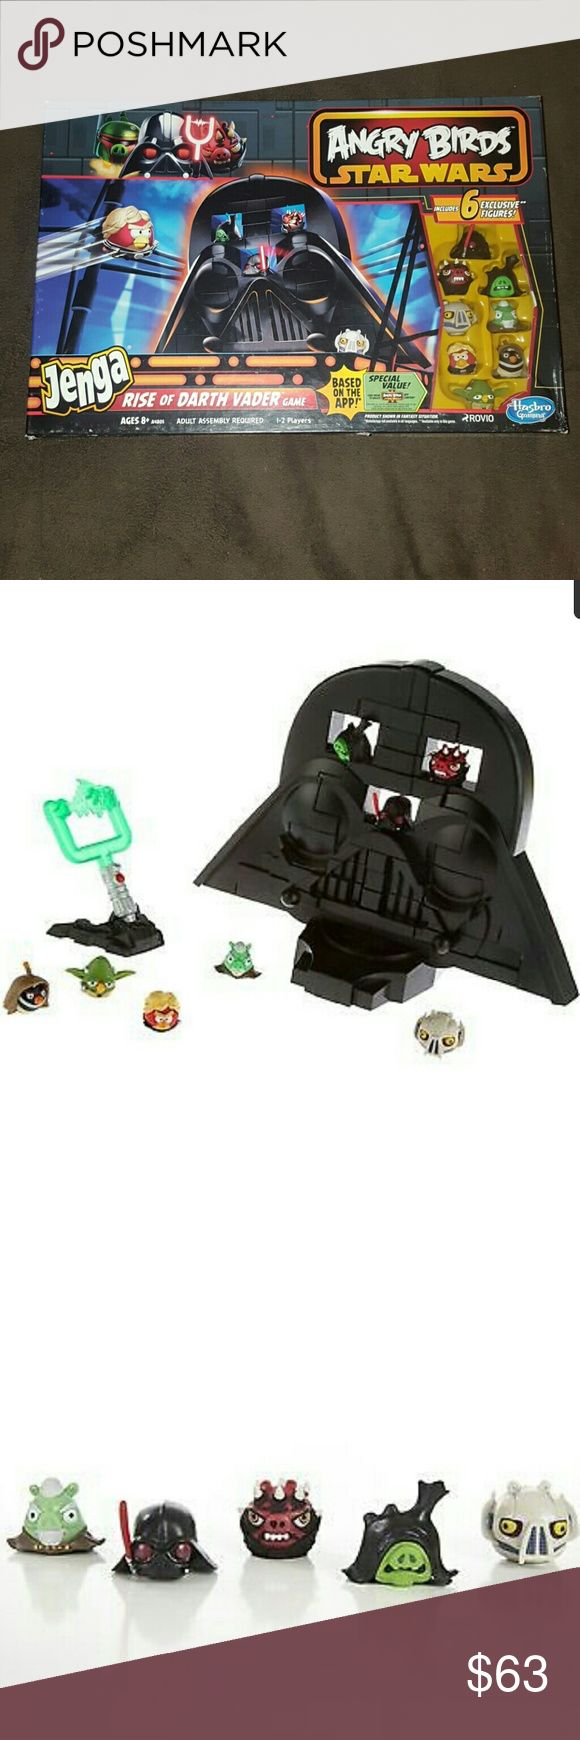 Angry Birds Star Wars Jenga Game Angry Birds Star Wars Jenga Rise of Darth Vader Game  ?LIMITED EDITION?  Features: Launch high-flying birds at your Jenga stack of blocks and pig figures in the Rise of Darth Vader game The one who knocks the most pigs off wins The Lightsaber launcher fires bird figures 6 of the included figures are exclusive to this game Includes Obi-Wan Kenobi, Luke Skywalker and Yoda bird figures and Darth Vader, General Grievous, Darth Maul, Count Dooku and Emperor…